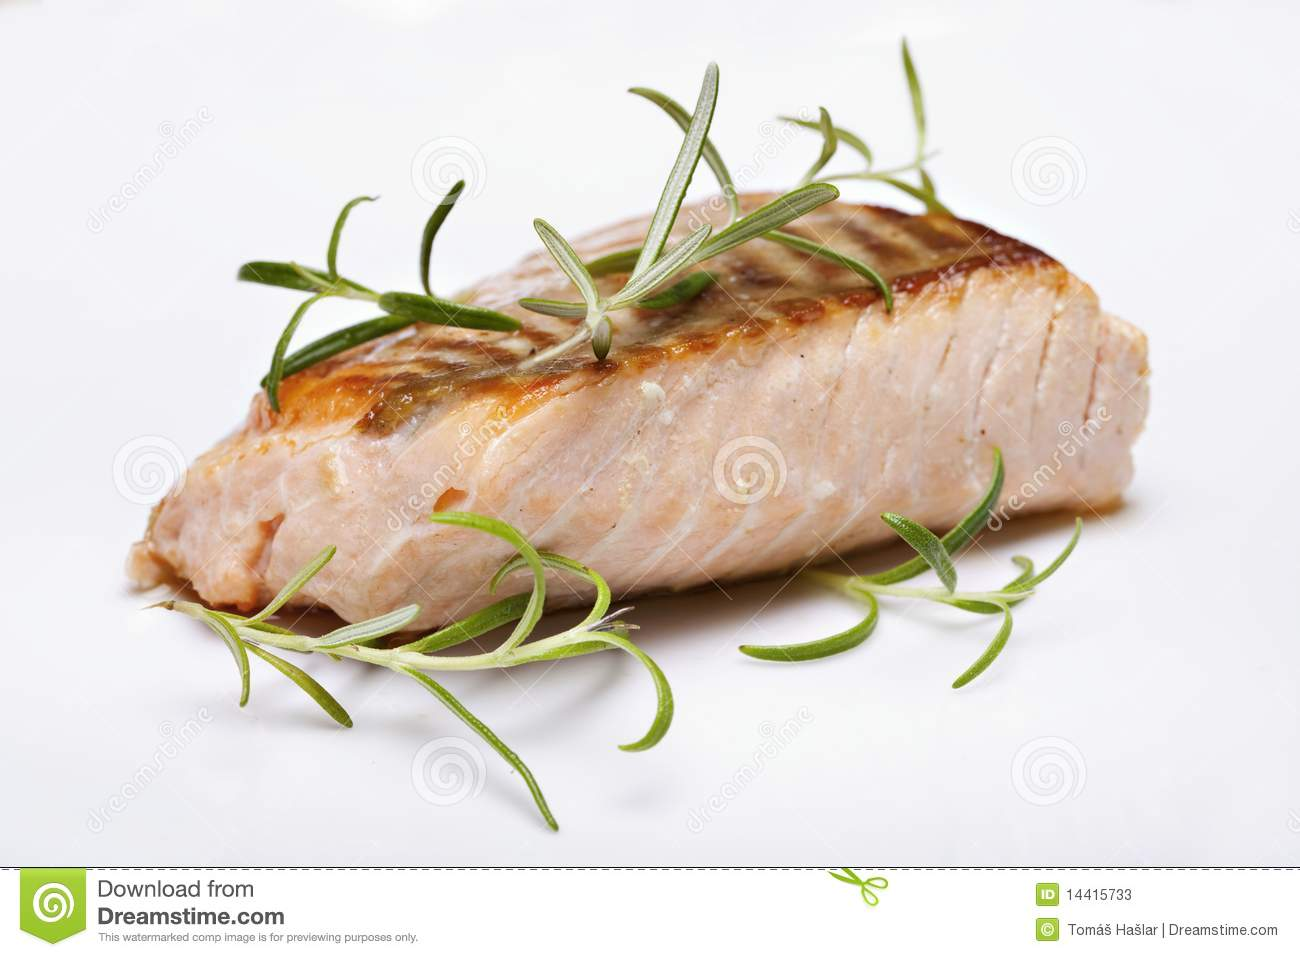 Cooked Salmon Clip Art Grilled Fish Salmon Steak